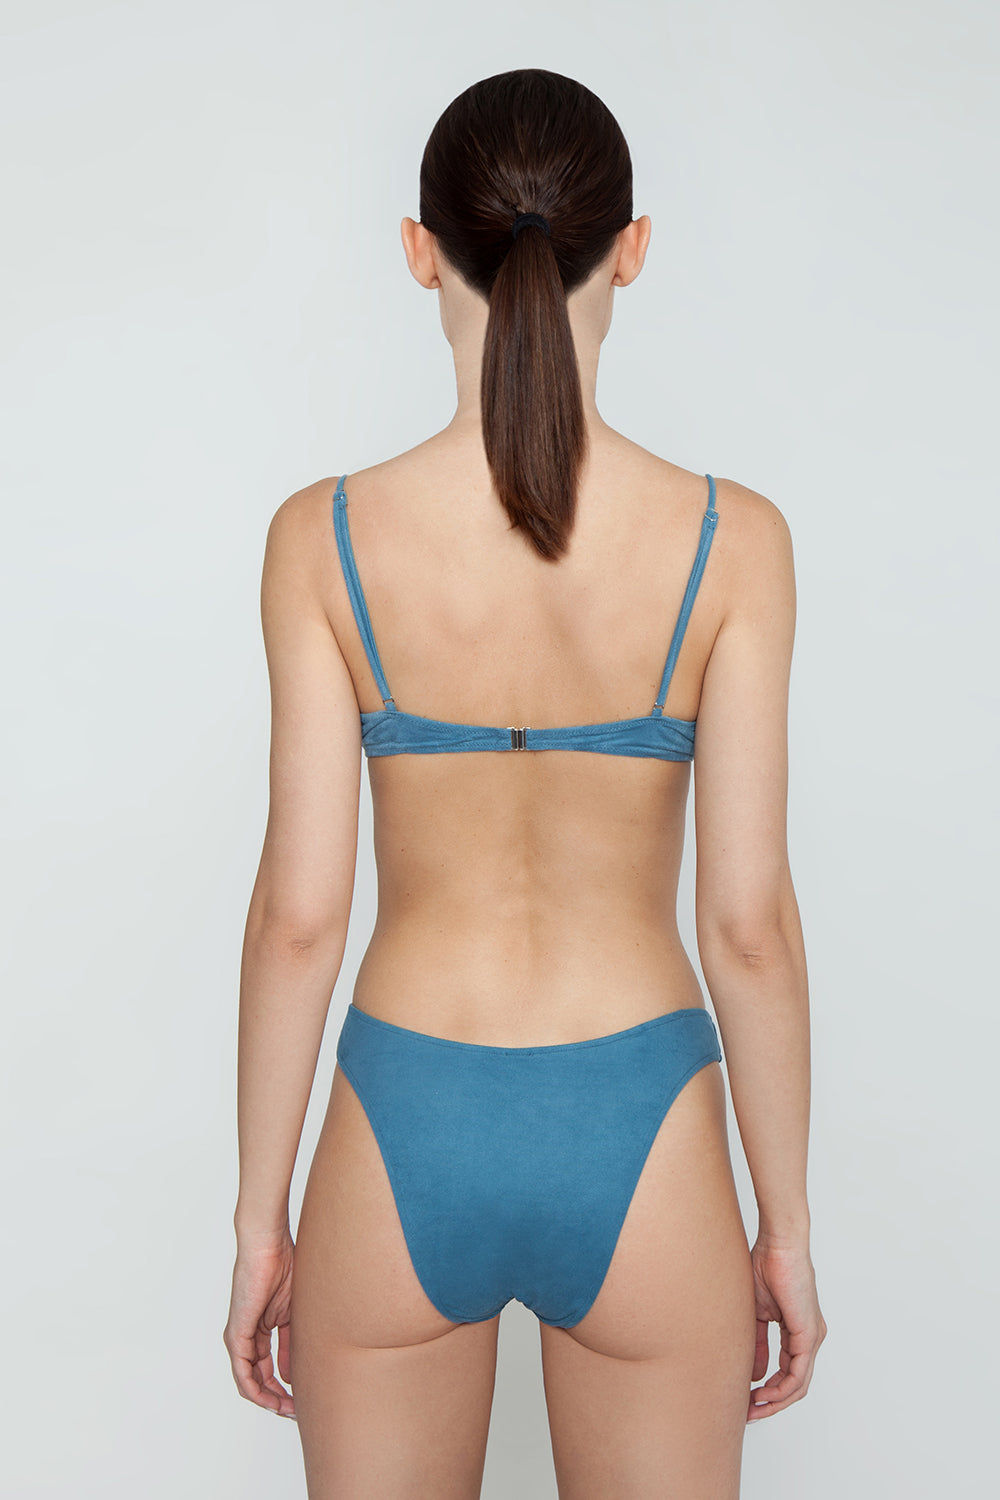 MONICA HANSEN BEACHWEAR Start Me Up Hipster Bikini Bottom - Blue Bikini Bottom | Blue| Monica Hansen Beachwear Start Me Up Hipster Bikini Bottom - Blue. Can be worn low rise or mid rise  High cut leg Cheeky coverage Italian fabric 88% Poliamide 12% Elastane Manufactured in Italy Hand wash cold.  Dry flat Back View